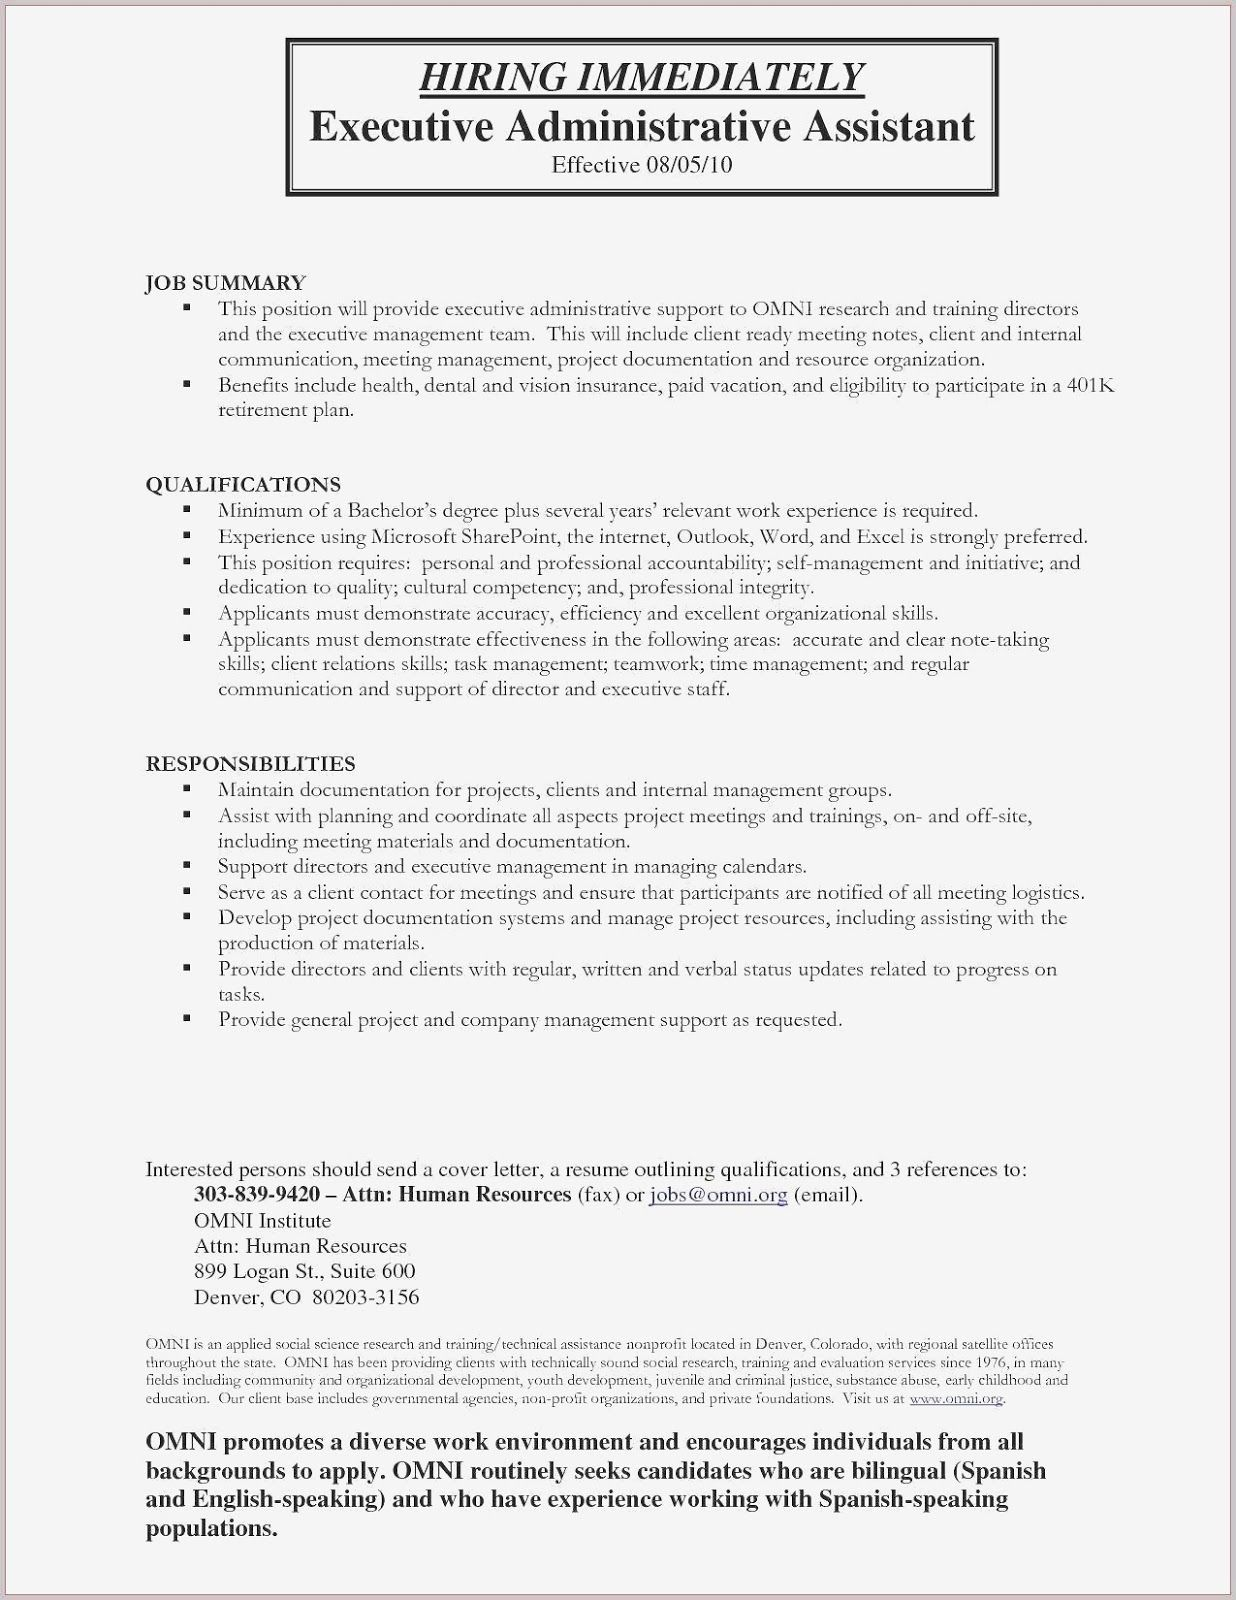 Hiring Immeditely Executive Administrative Assistant in